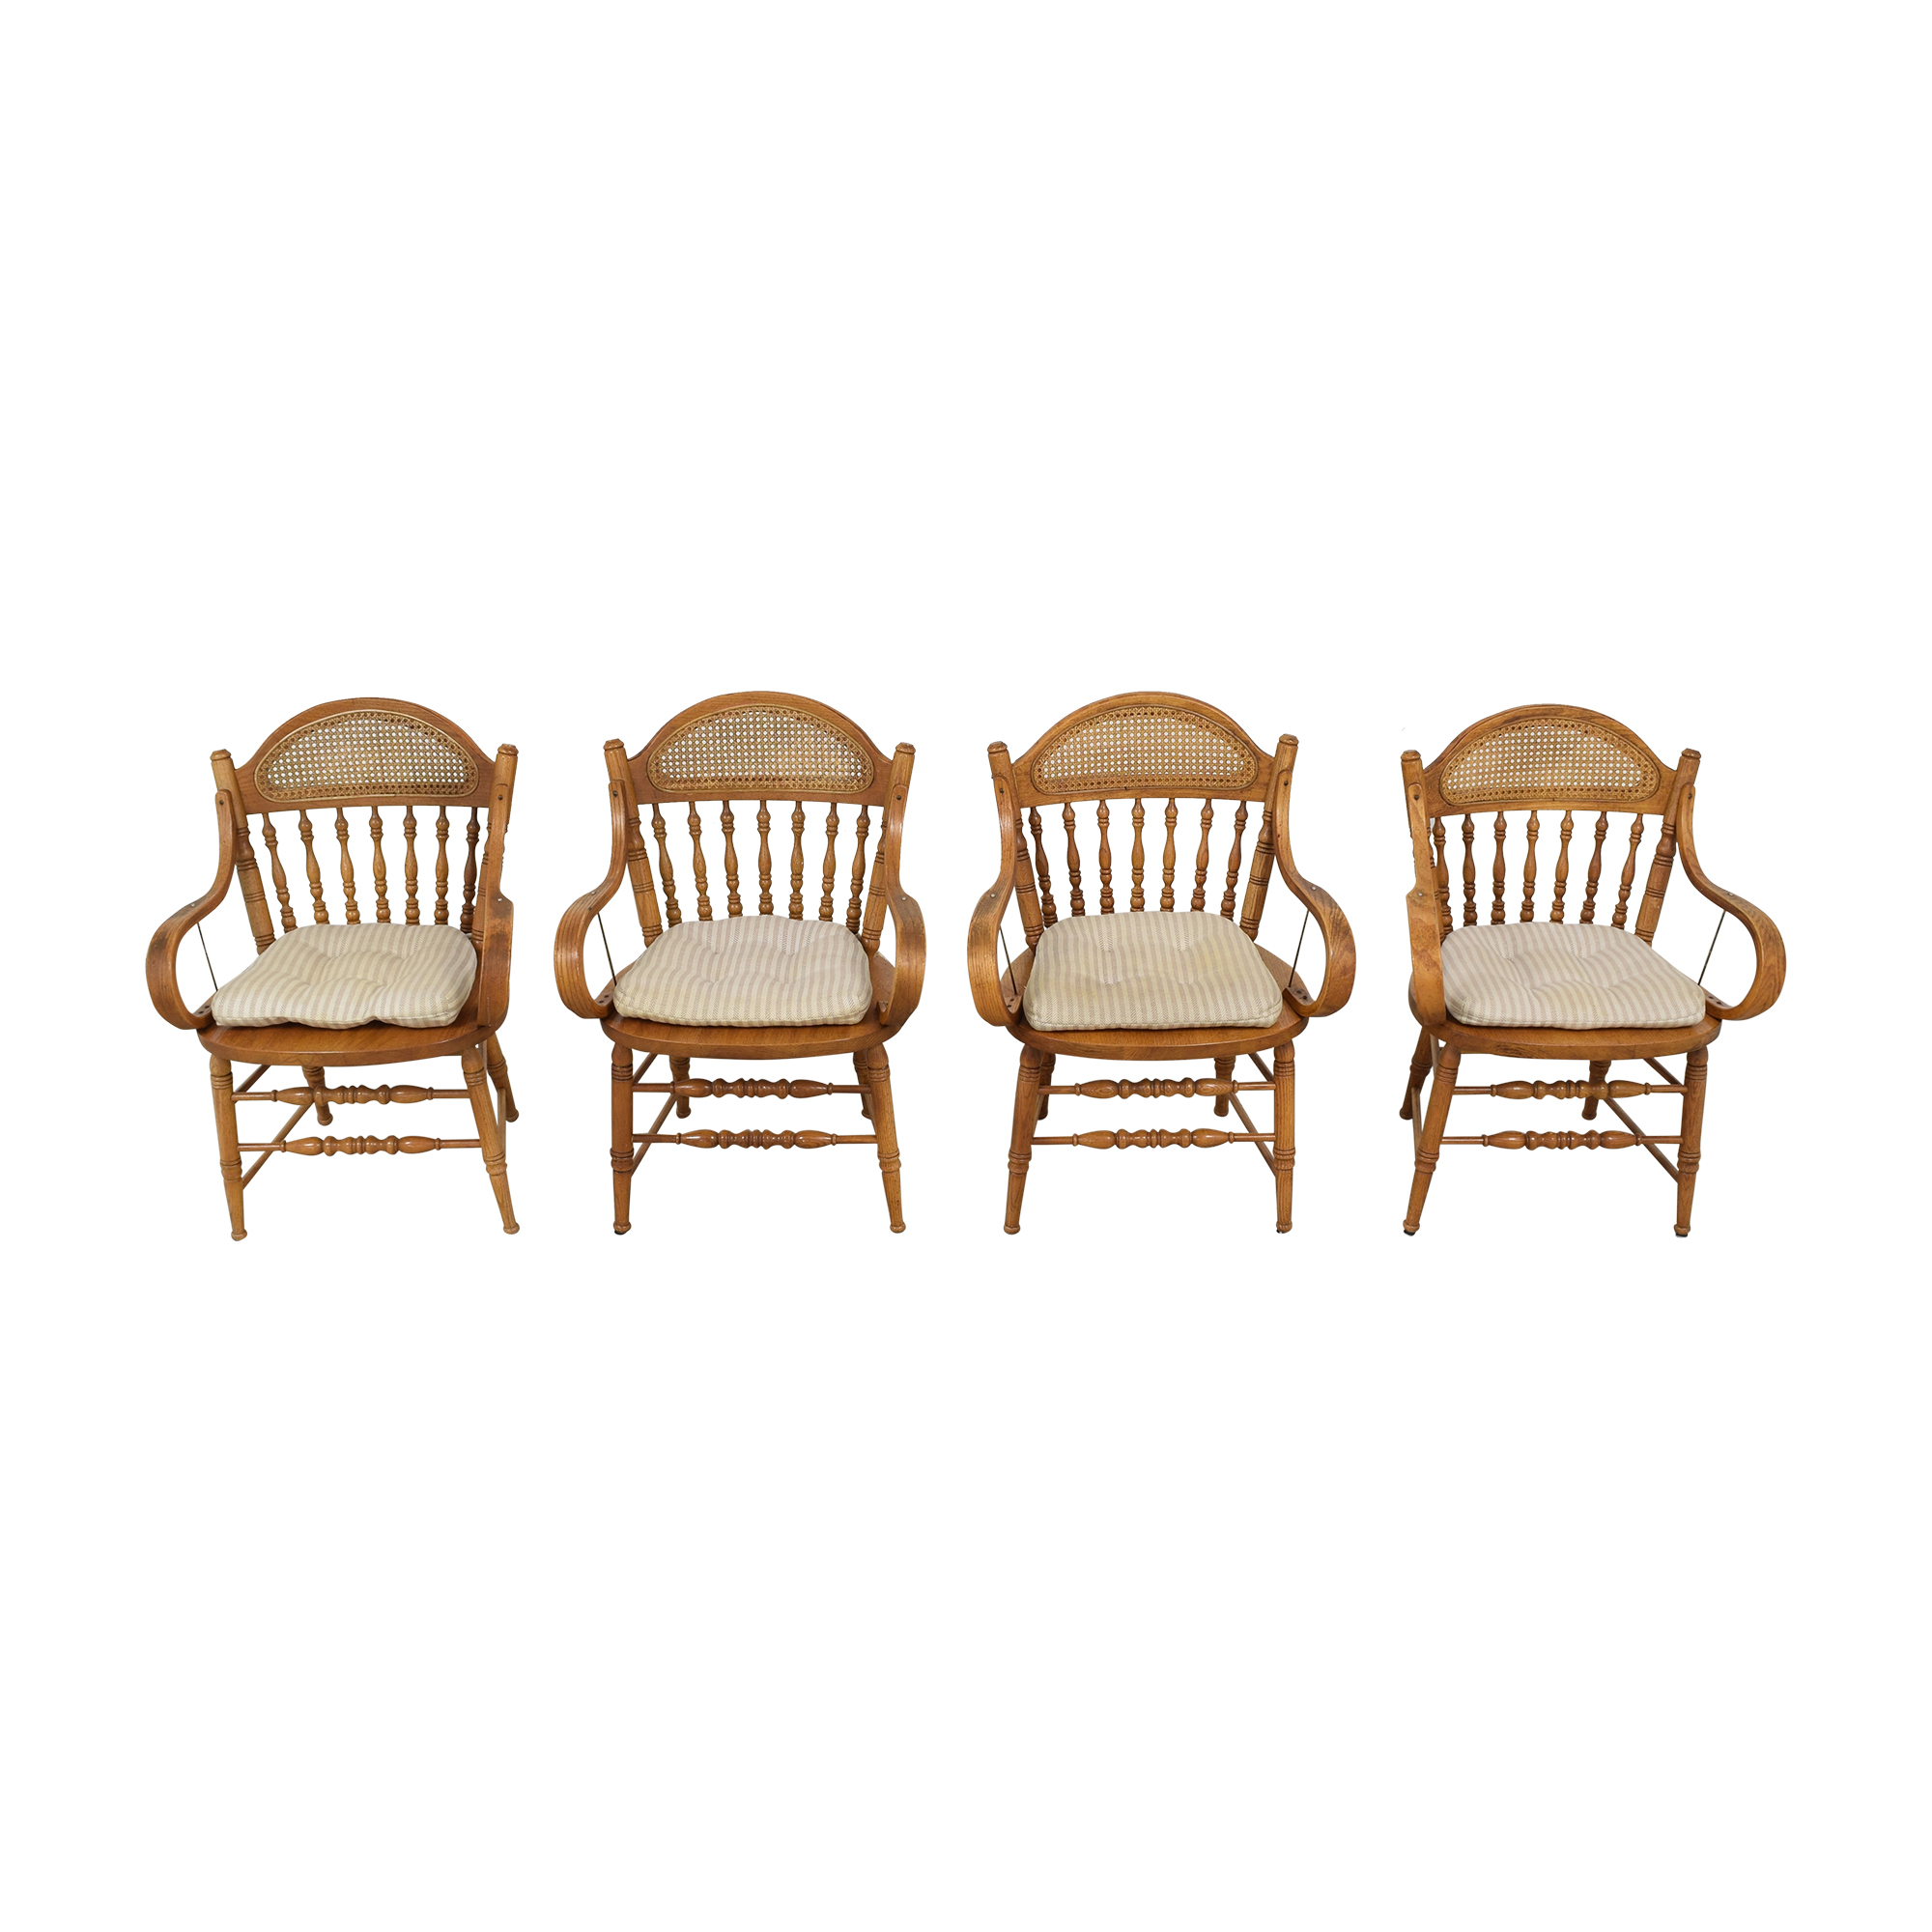 Oak Dining Arm Chairs with Cushions used